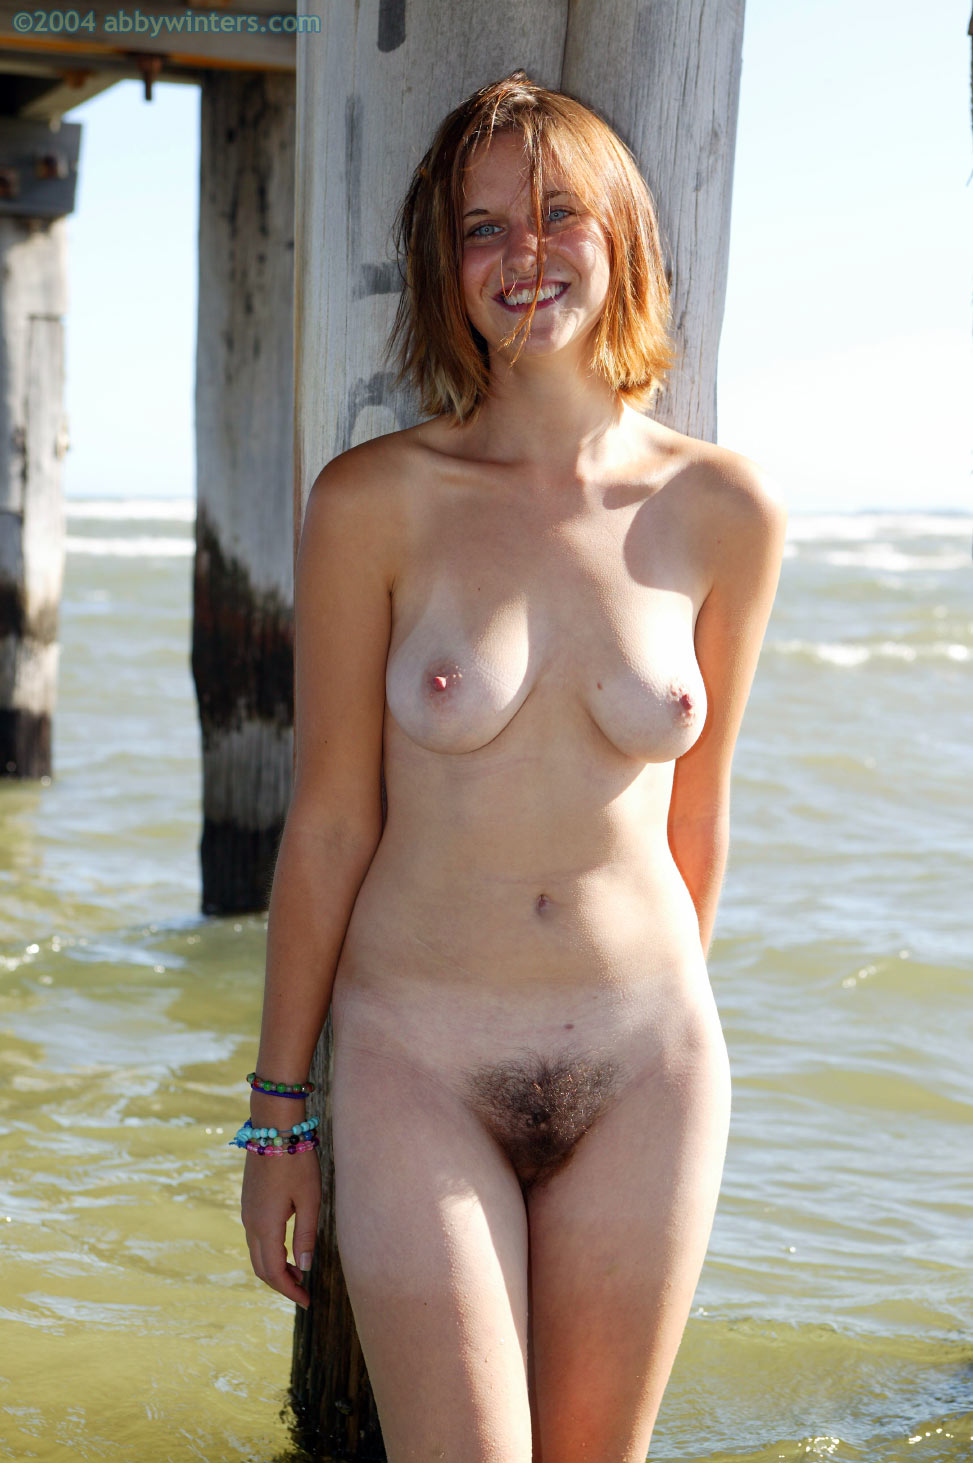 nebritie-nudistki